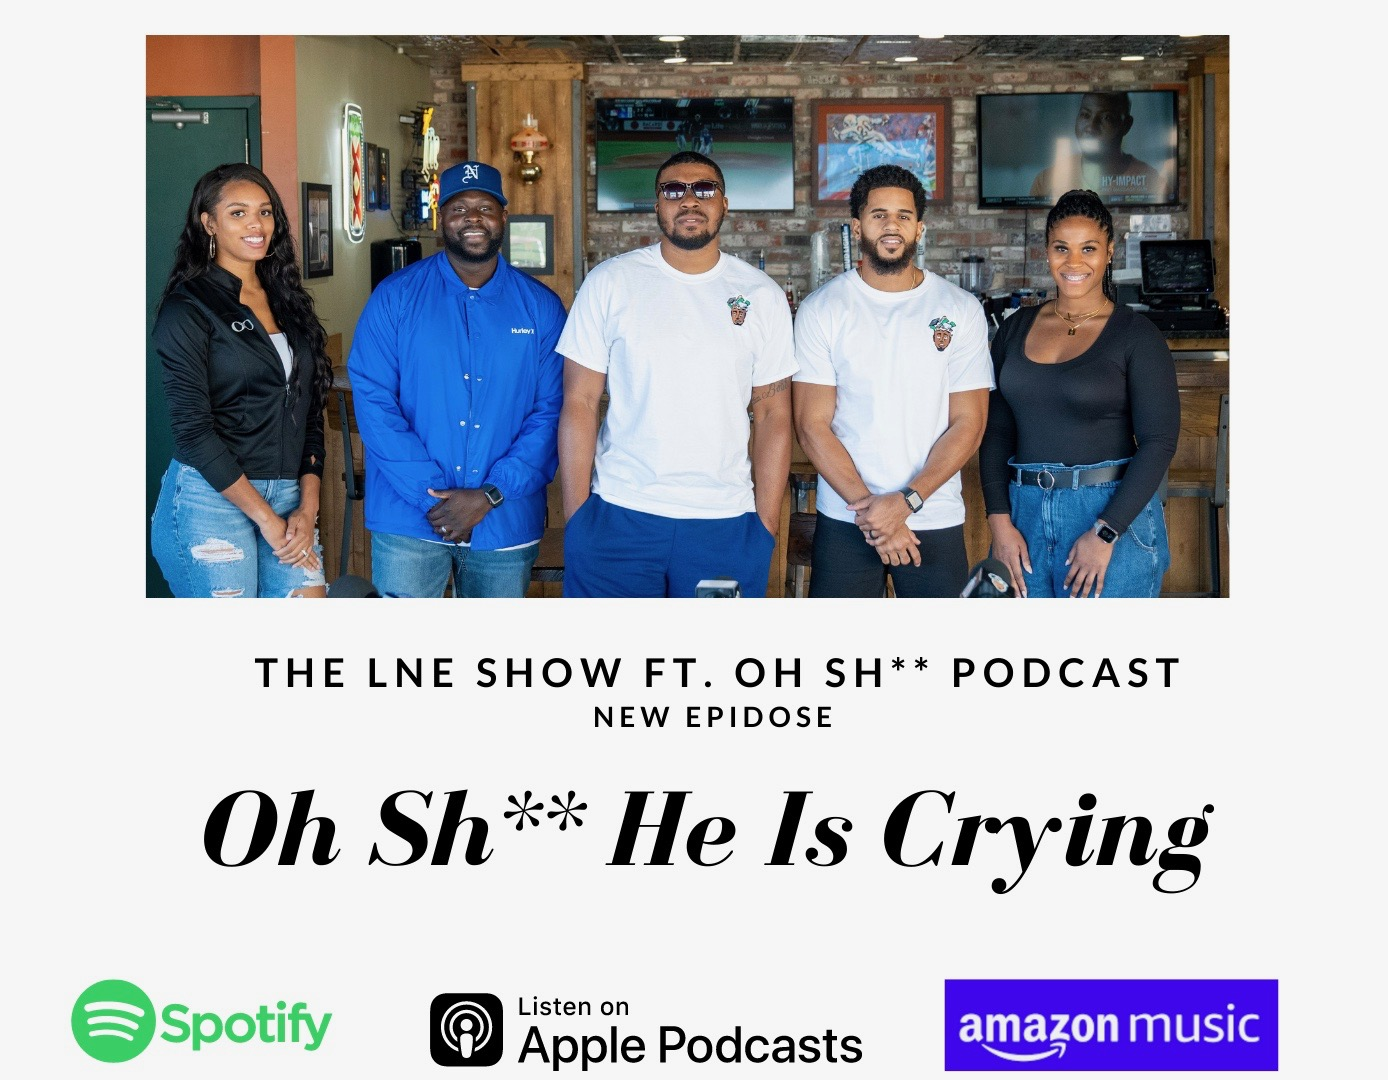 66. Oh Sh** He Is Crying Ft. Oh Sh** Podcast